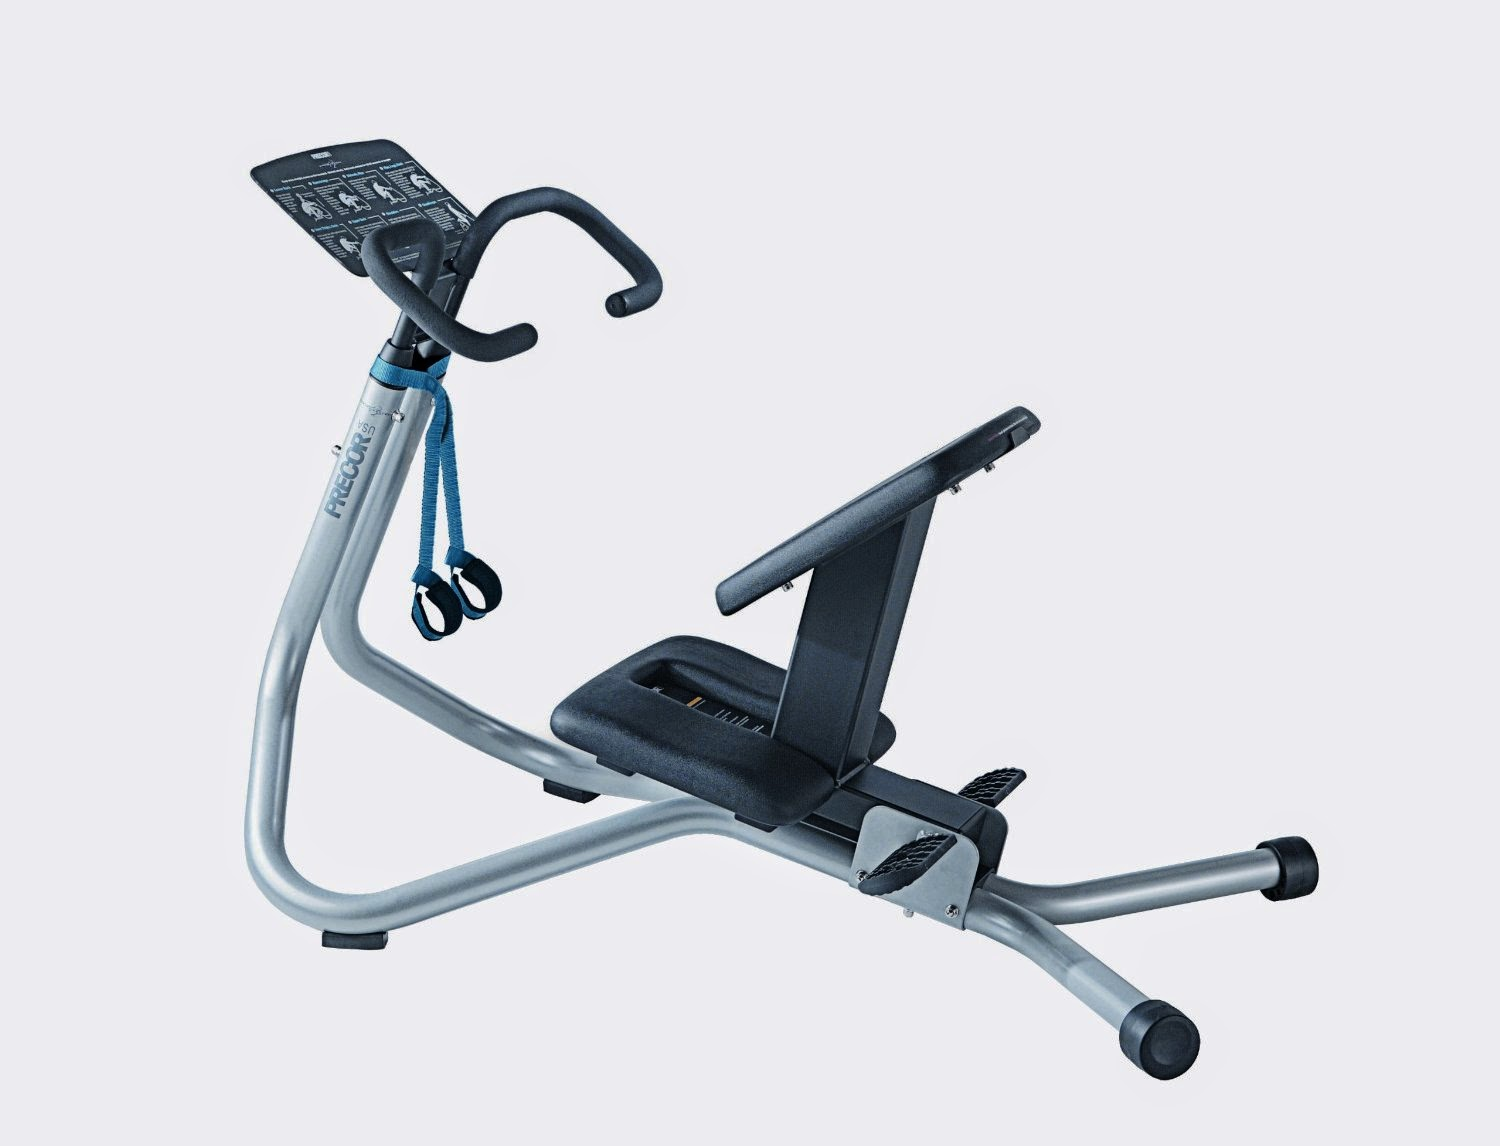 Precor 240i Commercial Series Stretch Trainer, comparison review with LifeSpan Fitness SP1000 Stretch Partner